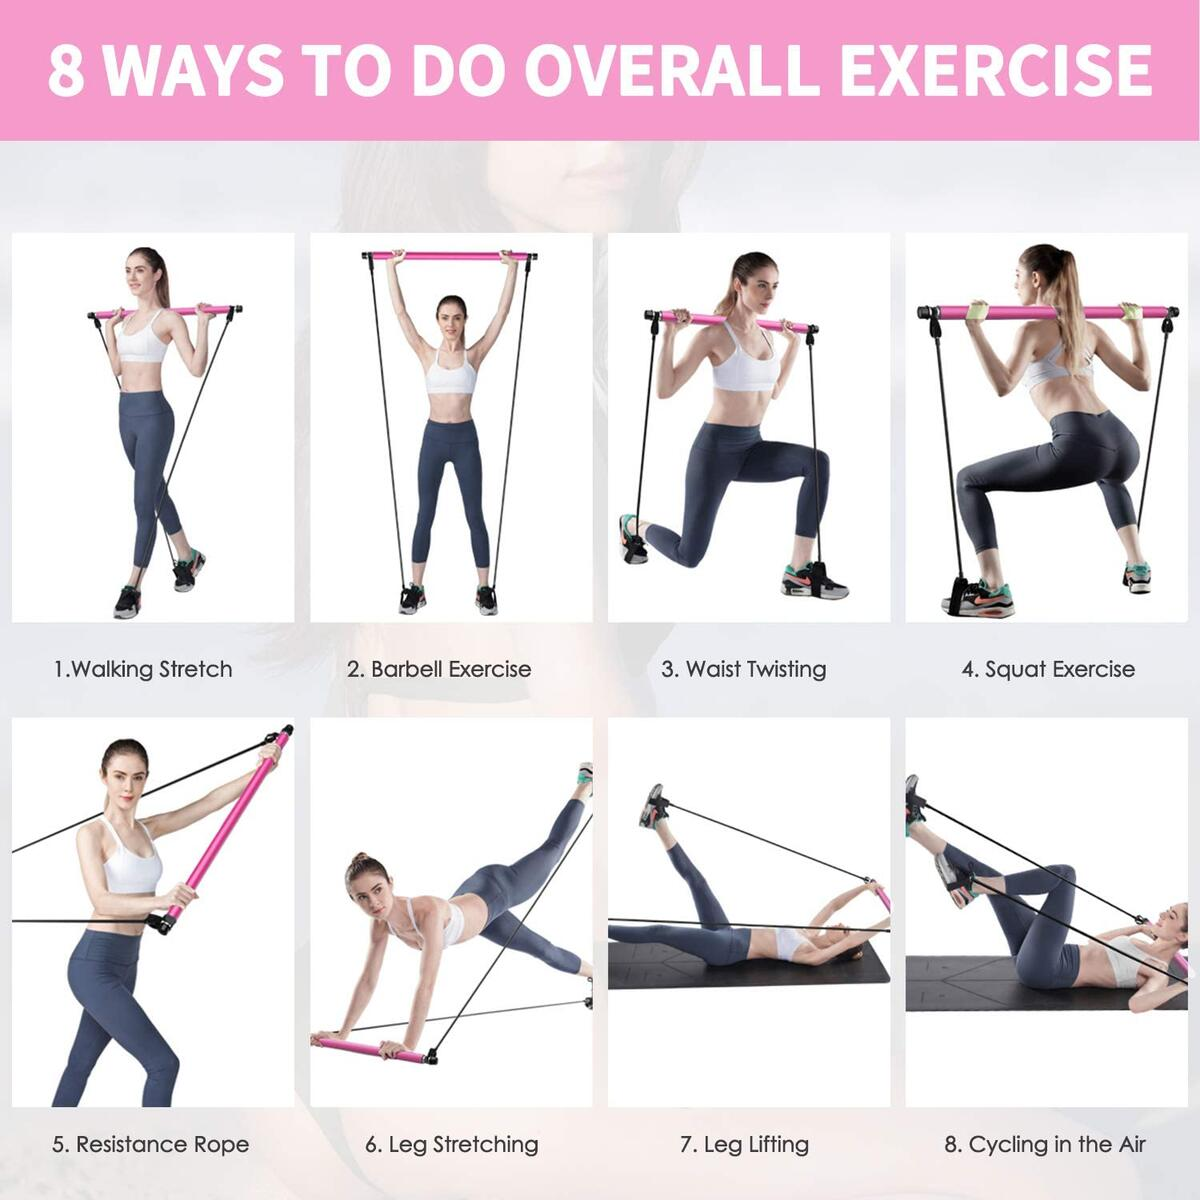 XCLOHAS Pilates Bar Kit with Resistance Band Portable Pilates Exercise Stick Muscle Toning Bar Home Gym Pilates with Foot Loop for Overall Body Workout